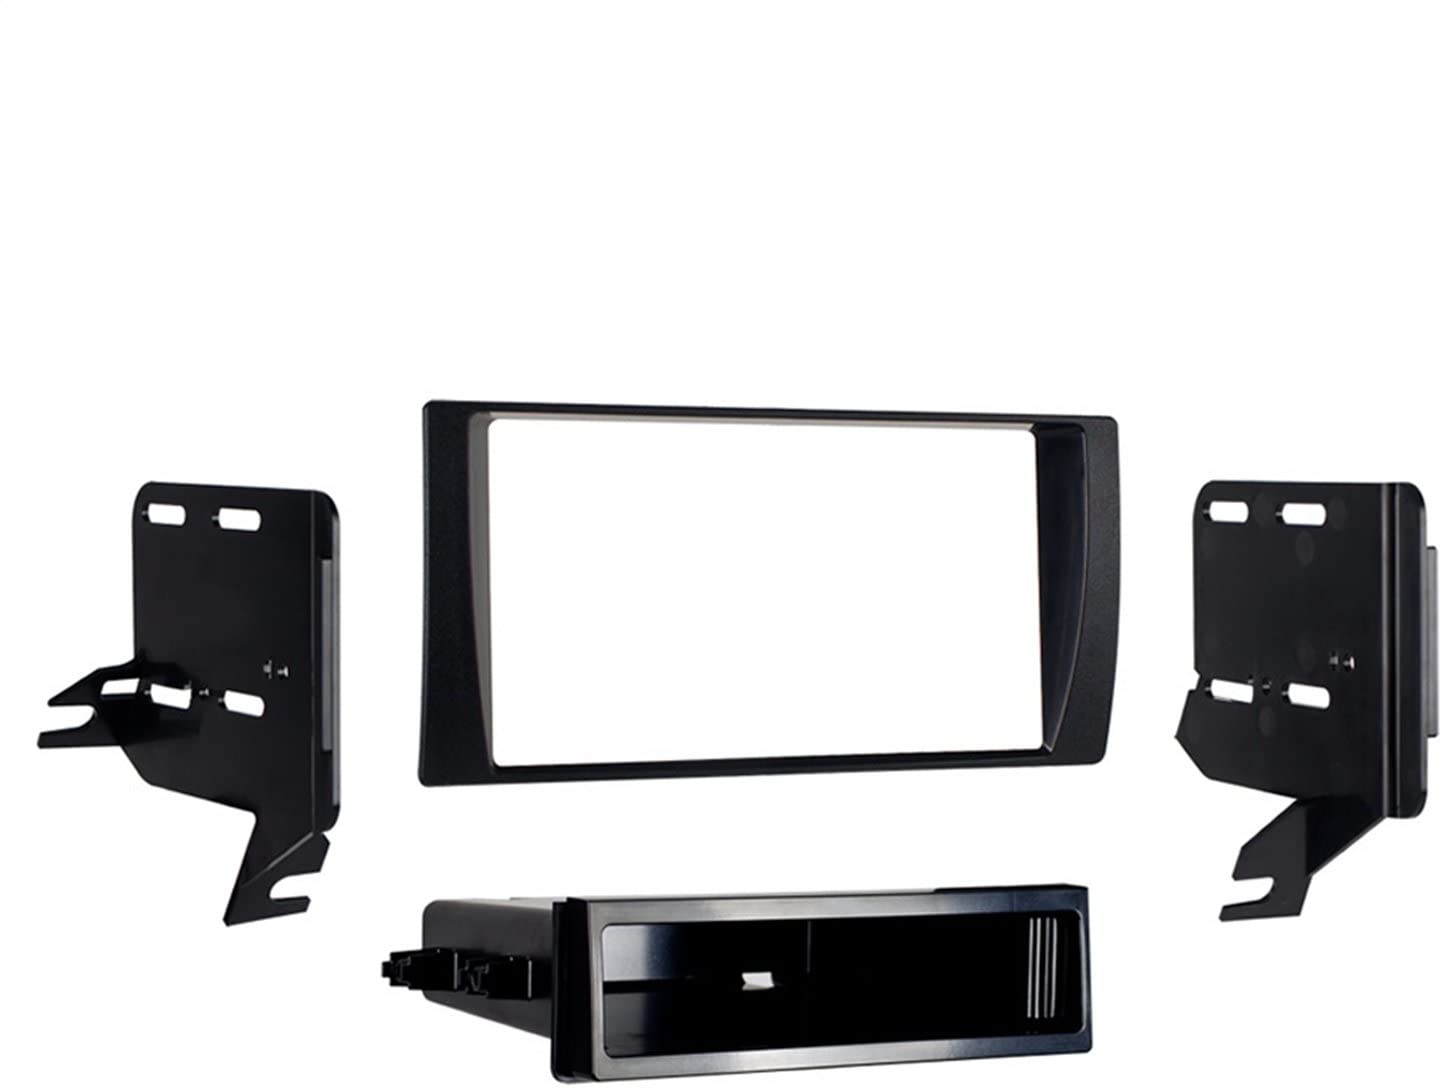 Metra 99-8231 Single or Double DIN Installation Dash Kit for 2002-2006 Toyota Camry: Car Electronics